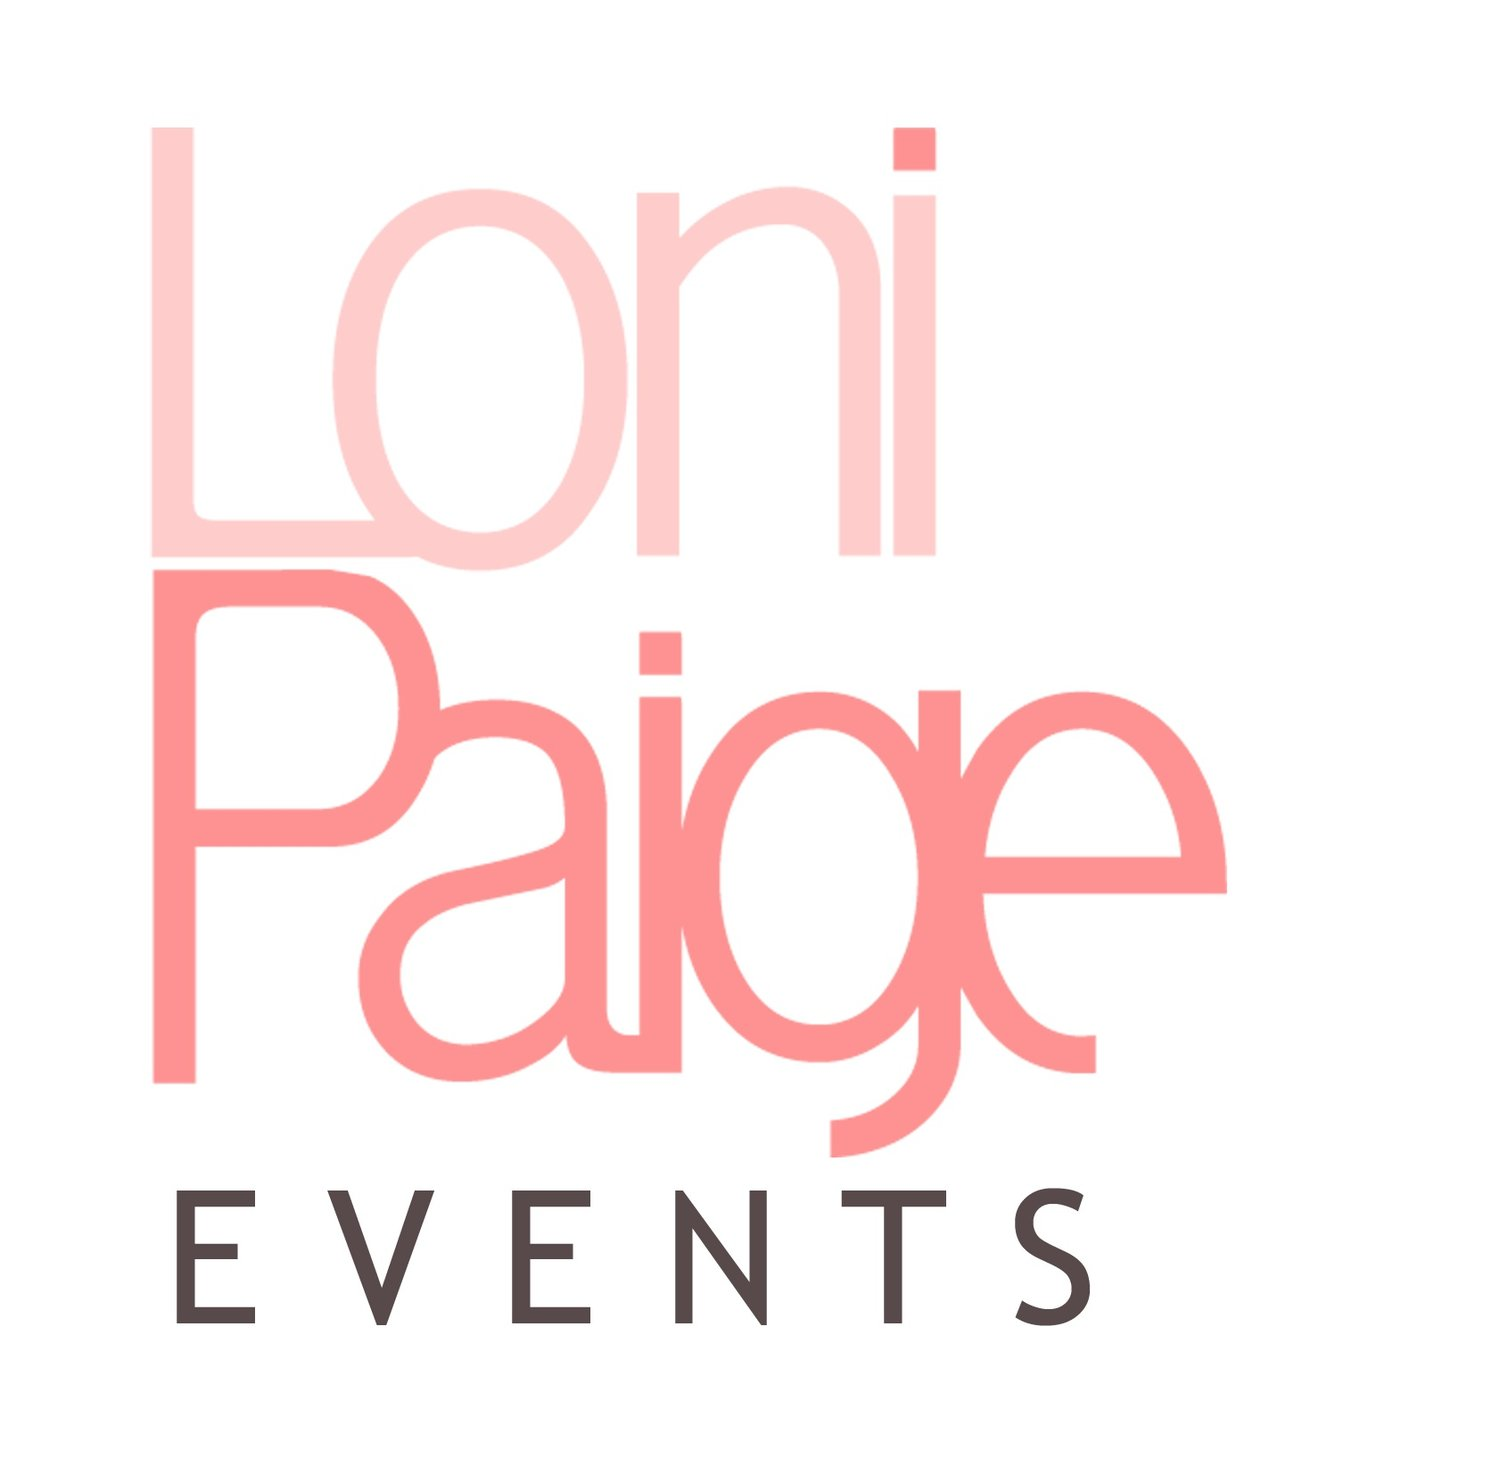 Loni Paige Events